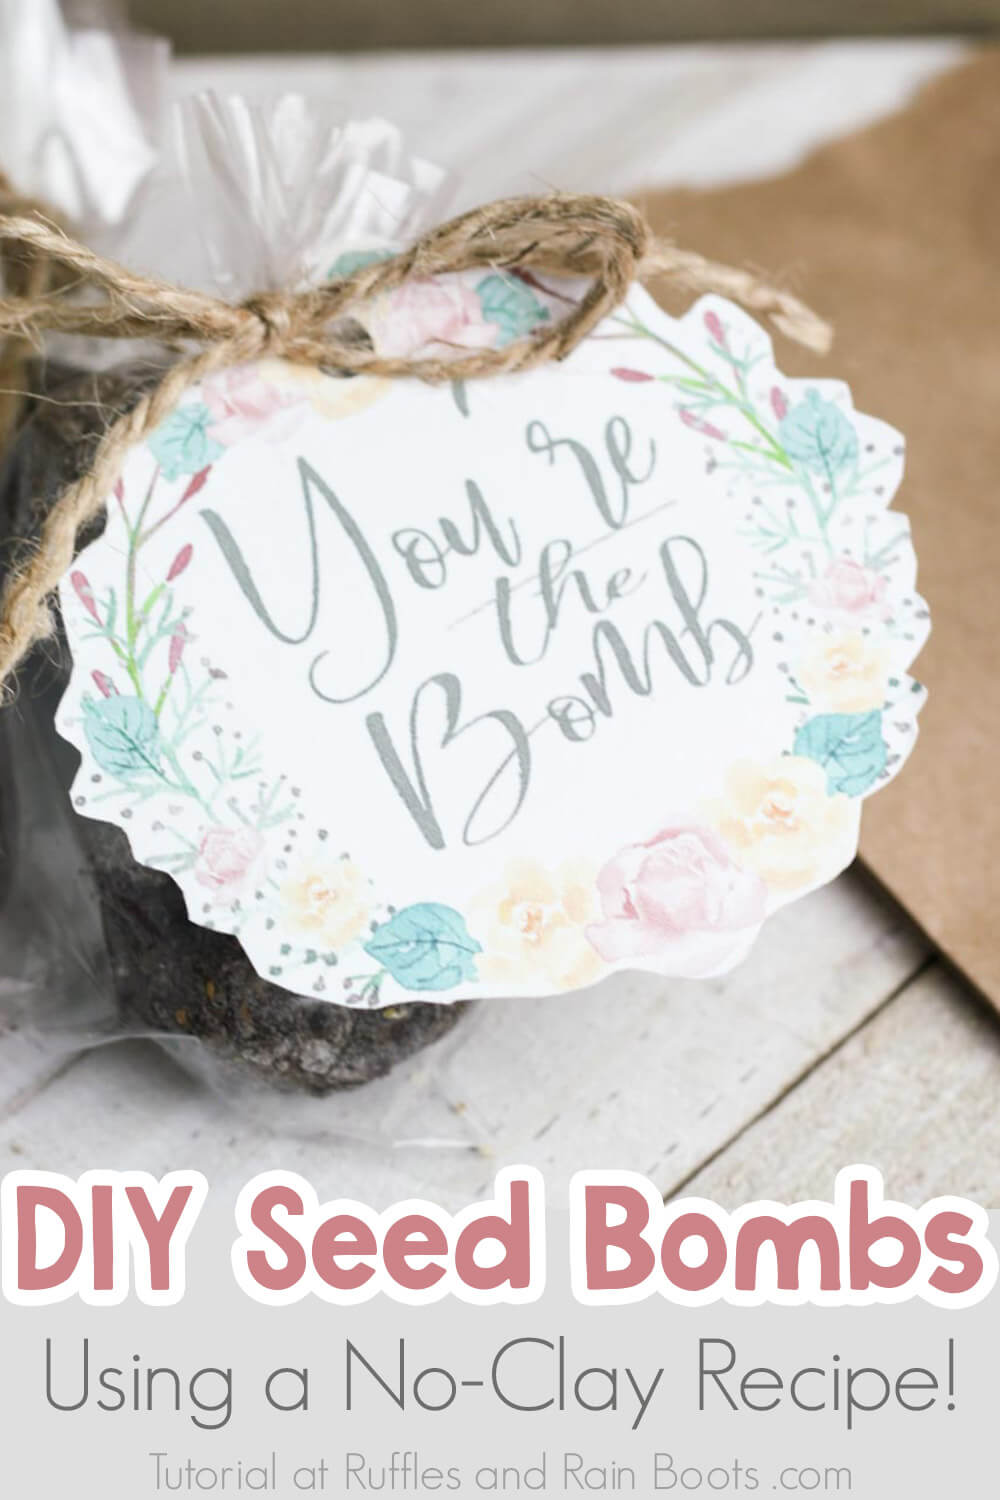 kid seed bomb recipe clay free with text which reads diy seed bombs using a no0clay recipe!